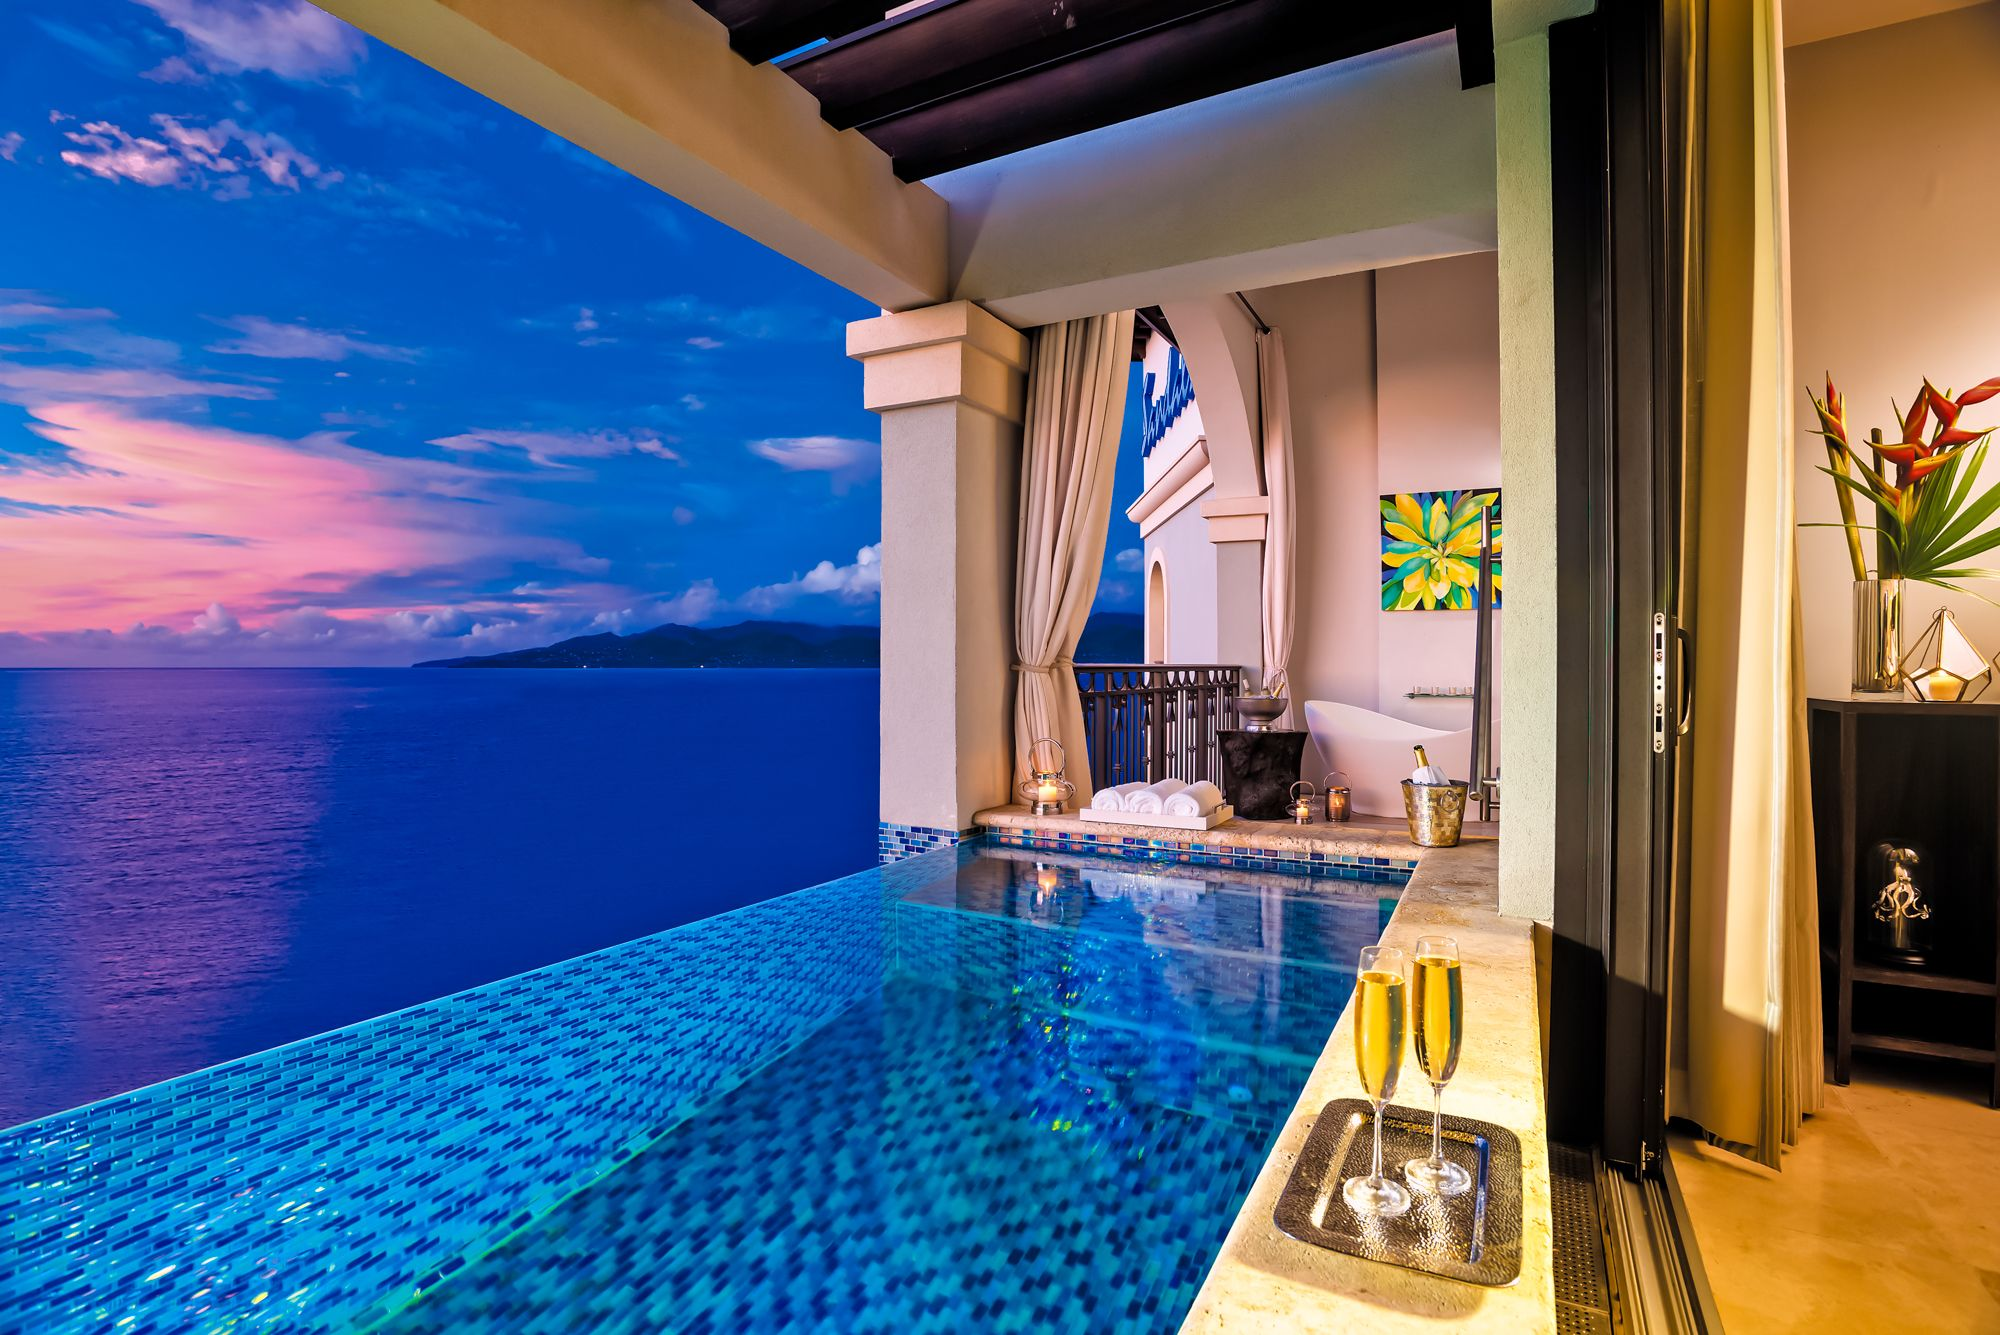 Sandals-Grenada-suite-Skypool